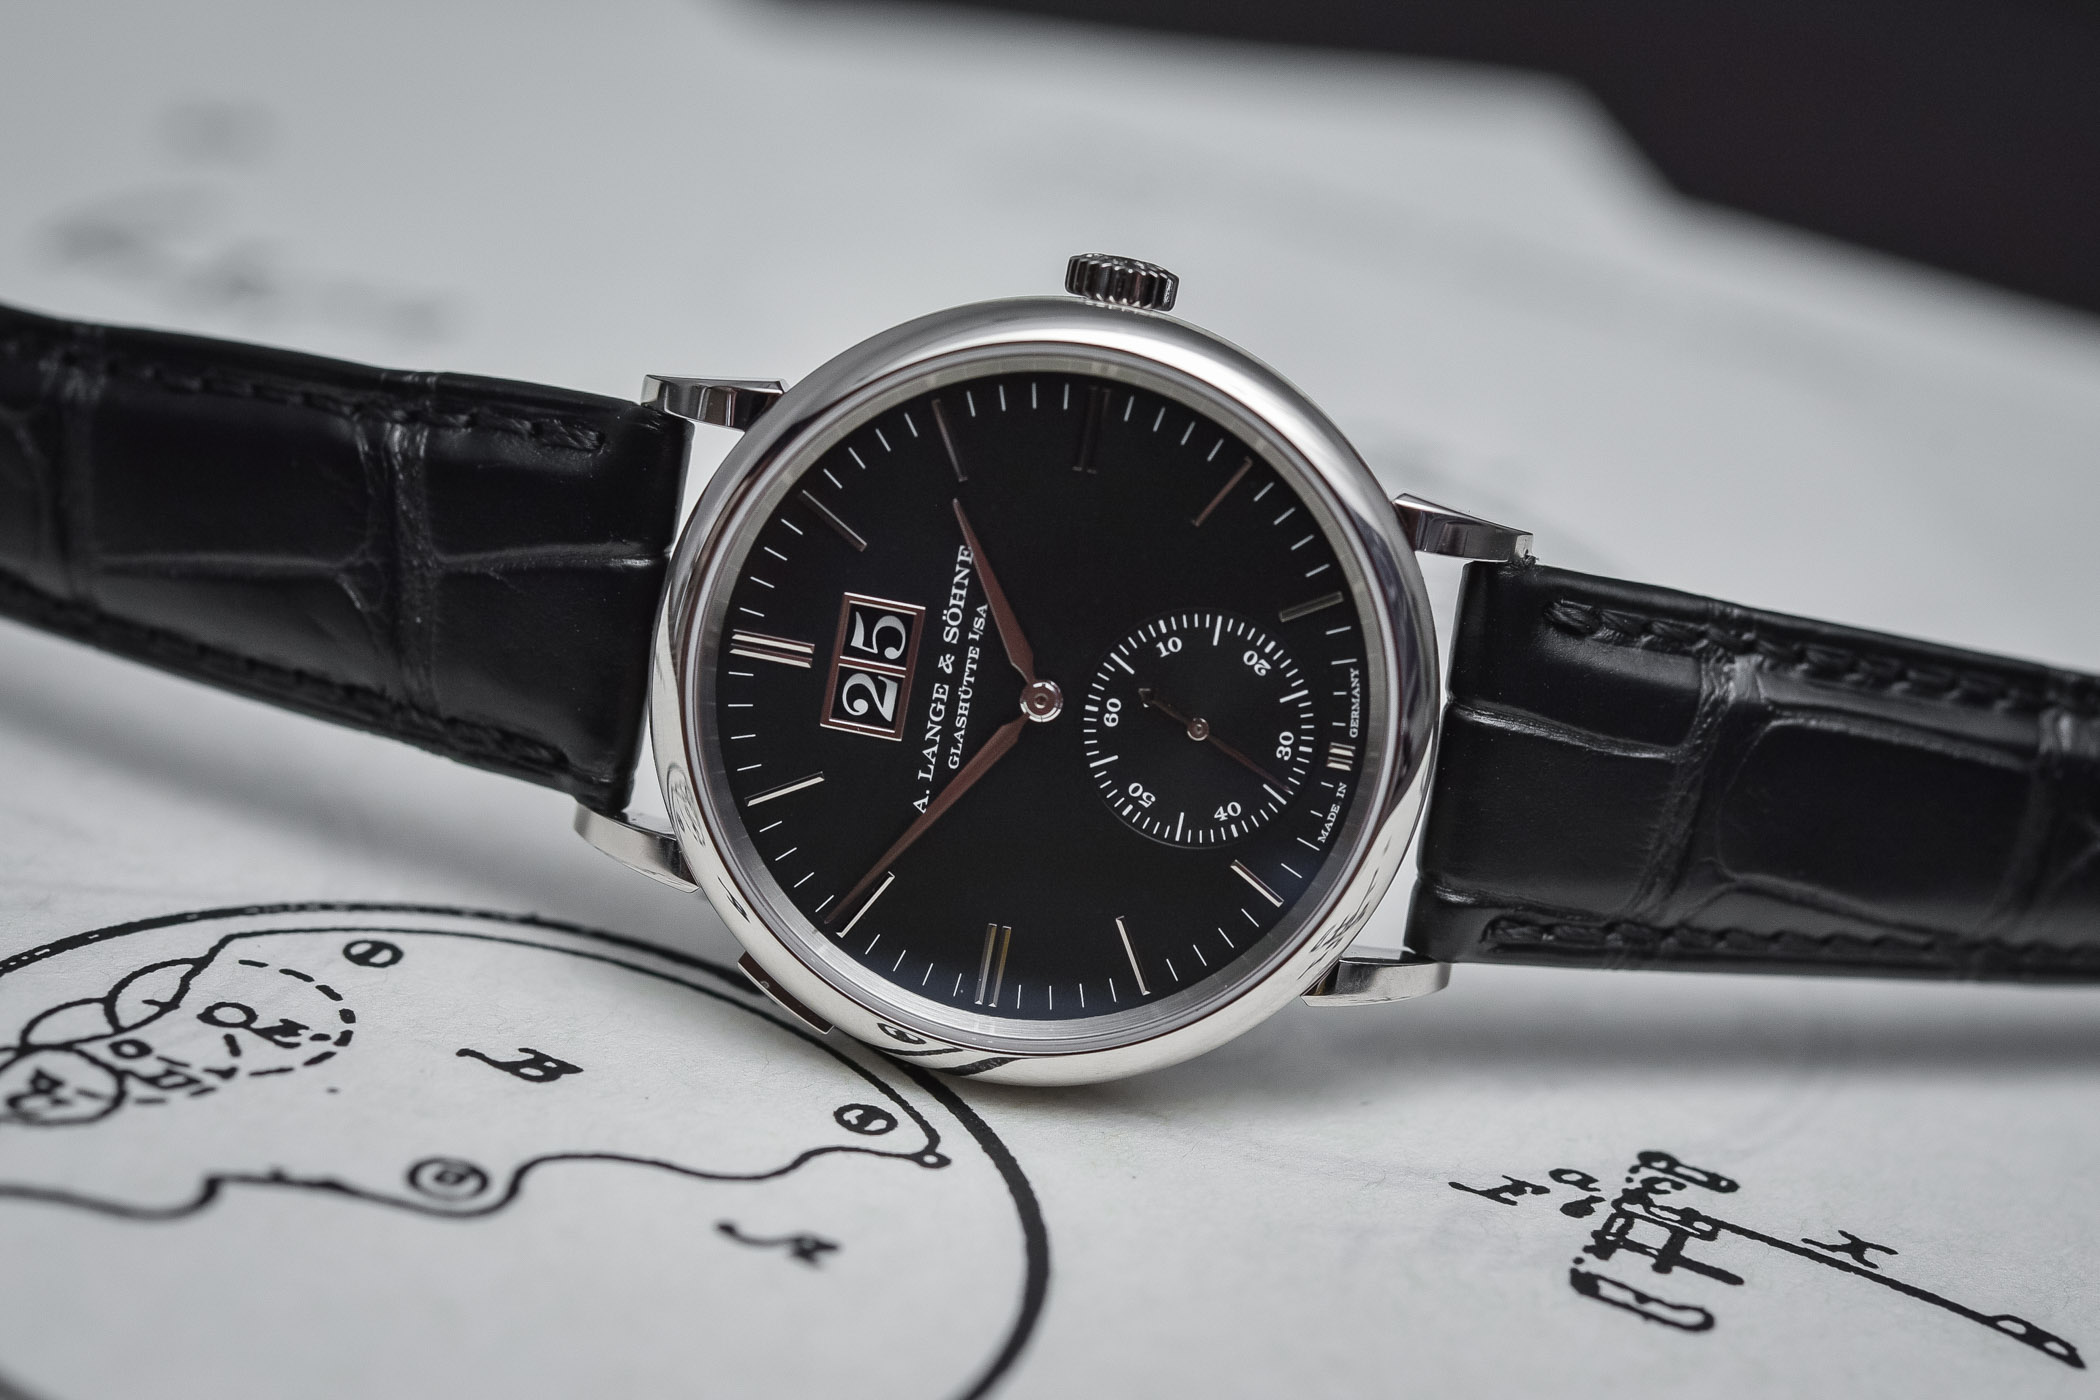 A. Lange Sohne Saxonia Outsize Date - SIHH 2018